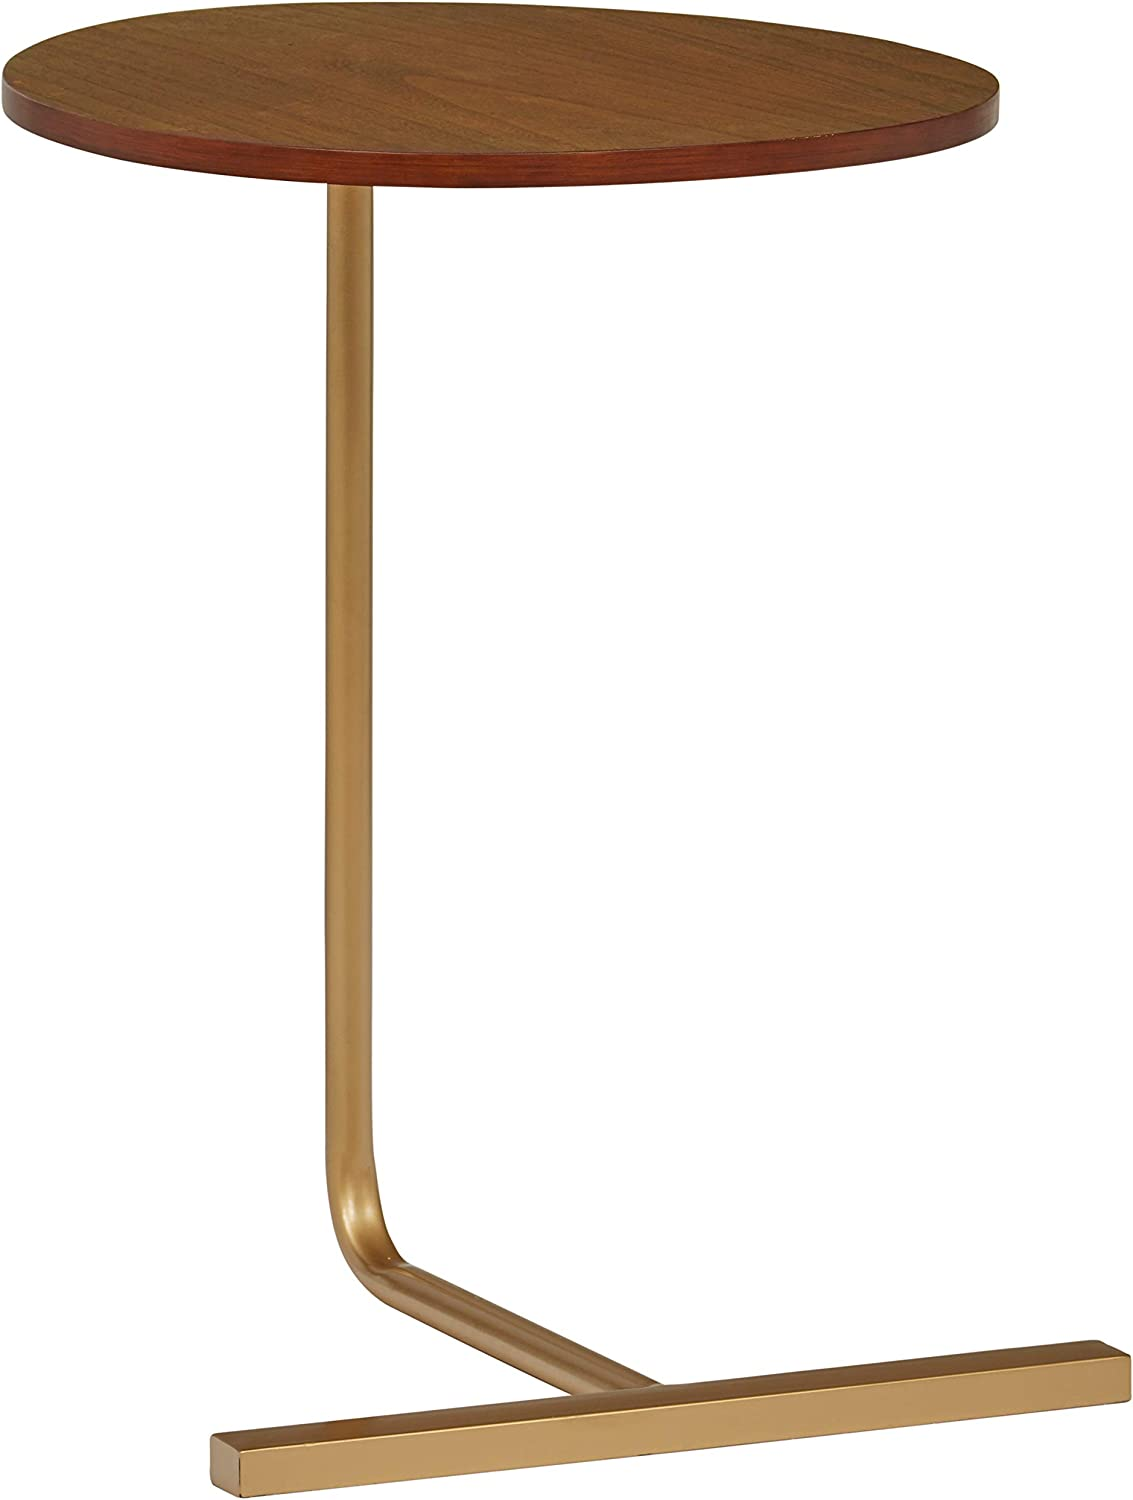 Amazon Brand – Rivet Modern End Table, 19.3 Inch Width, Natural and Gold